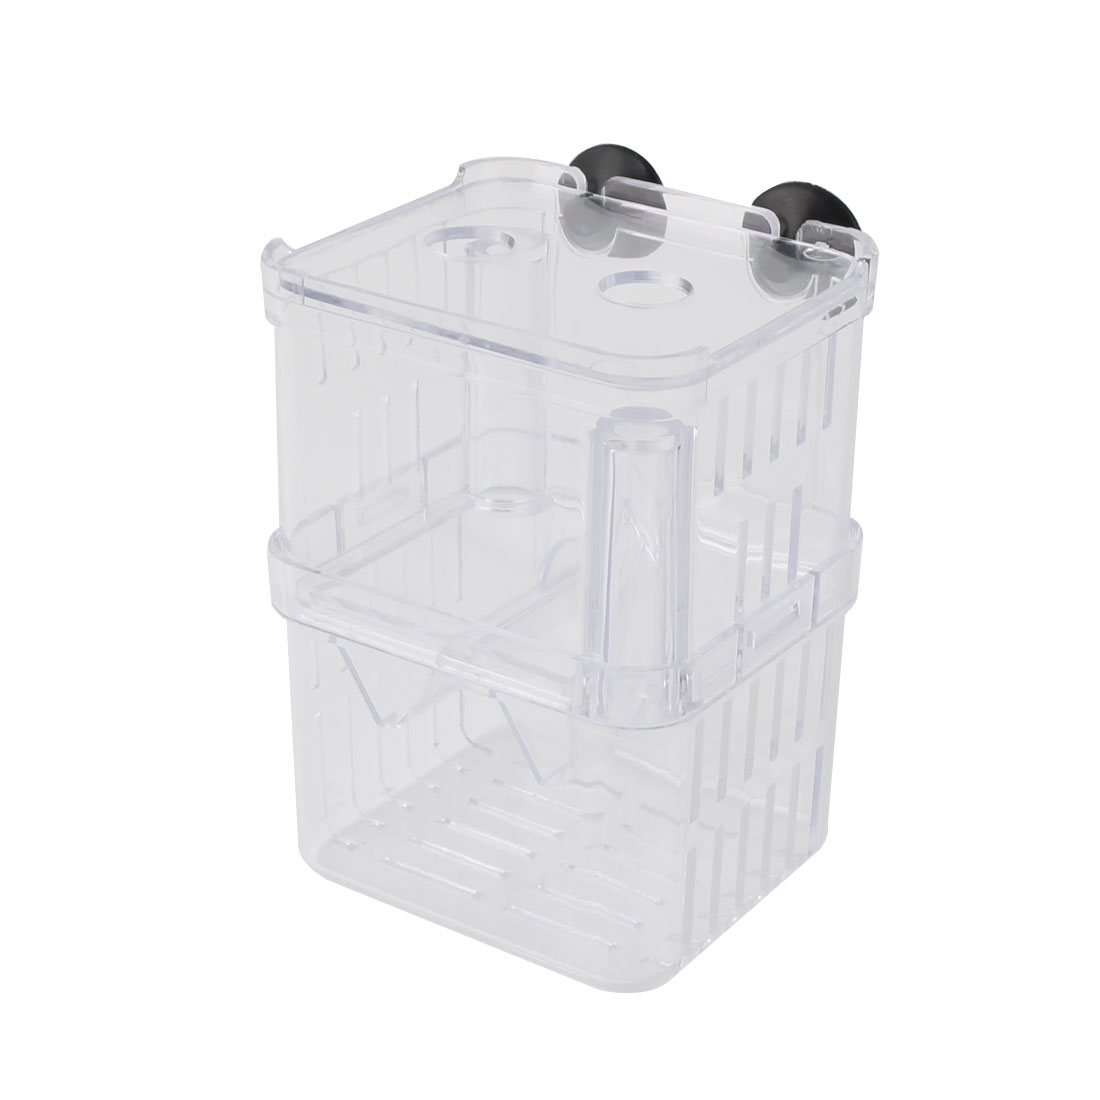 Pet Fish Hanging Aquarium Tank Incubator Hatchery Breeder Box 8 x 7 x 11cm